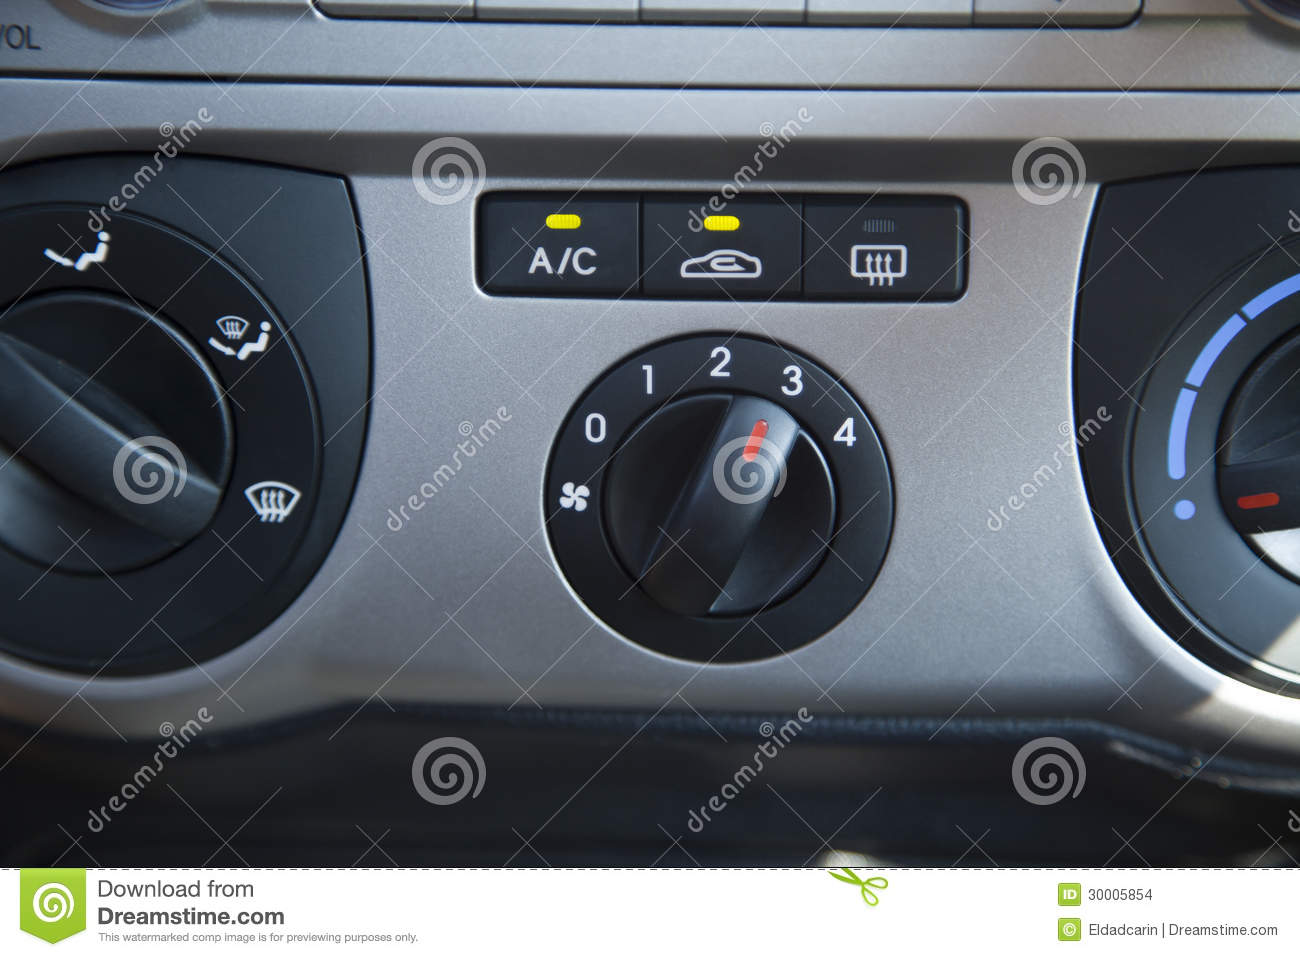 car air conditioning control panel stock photo image